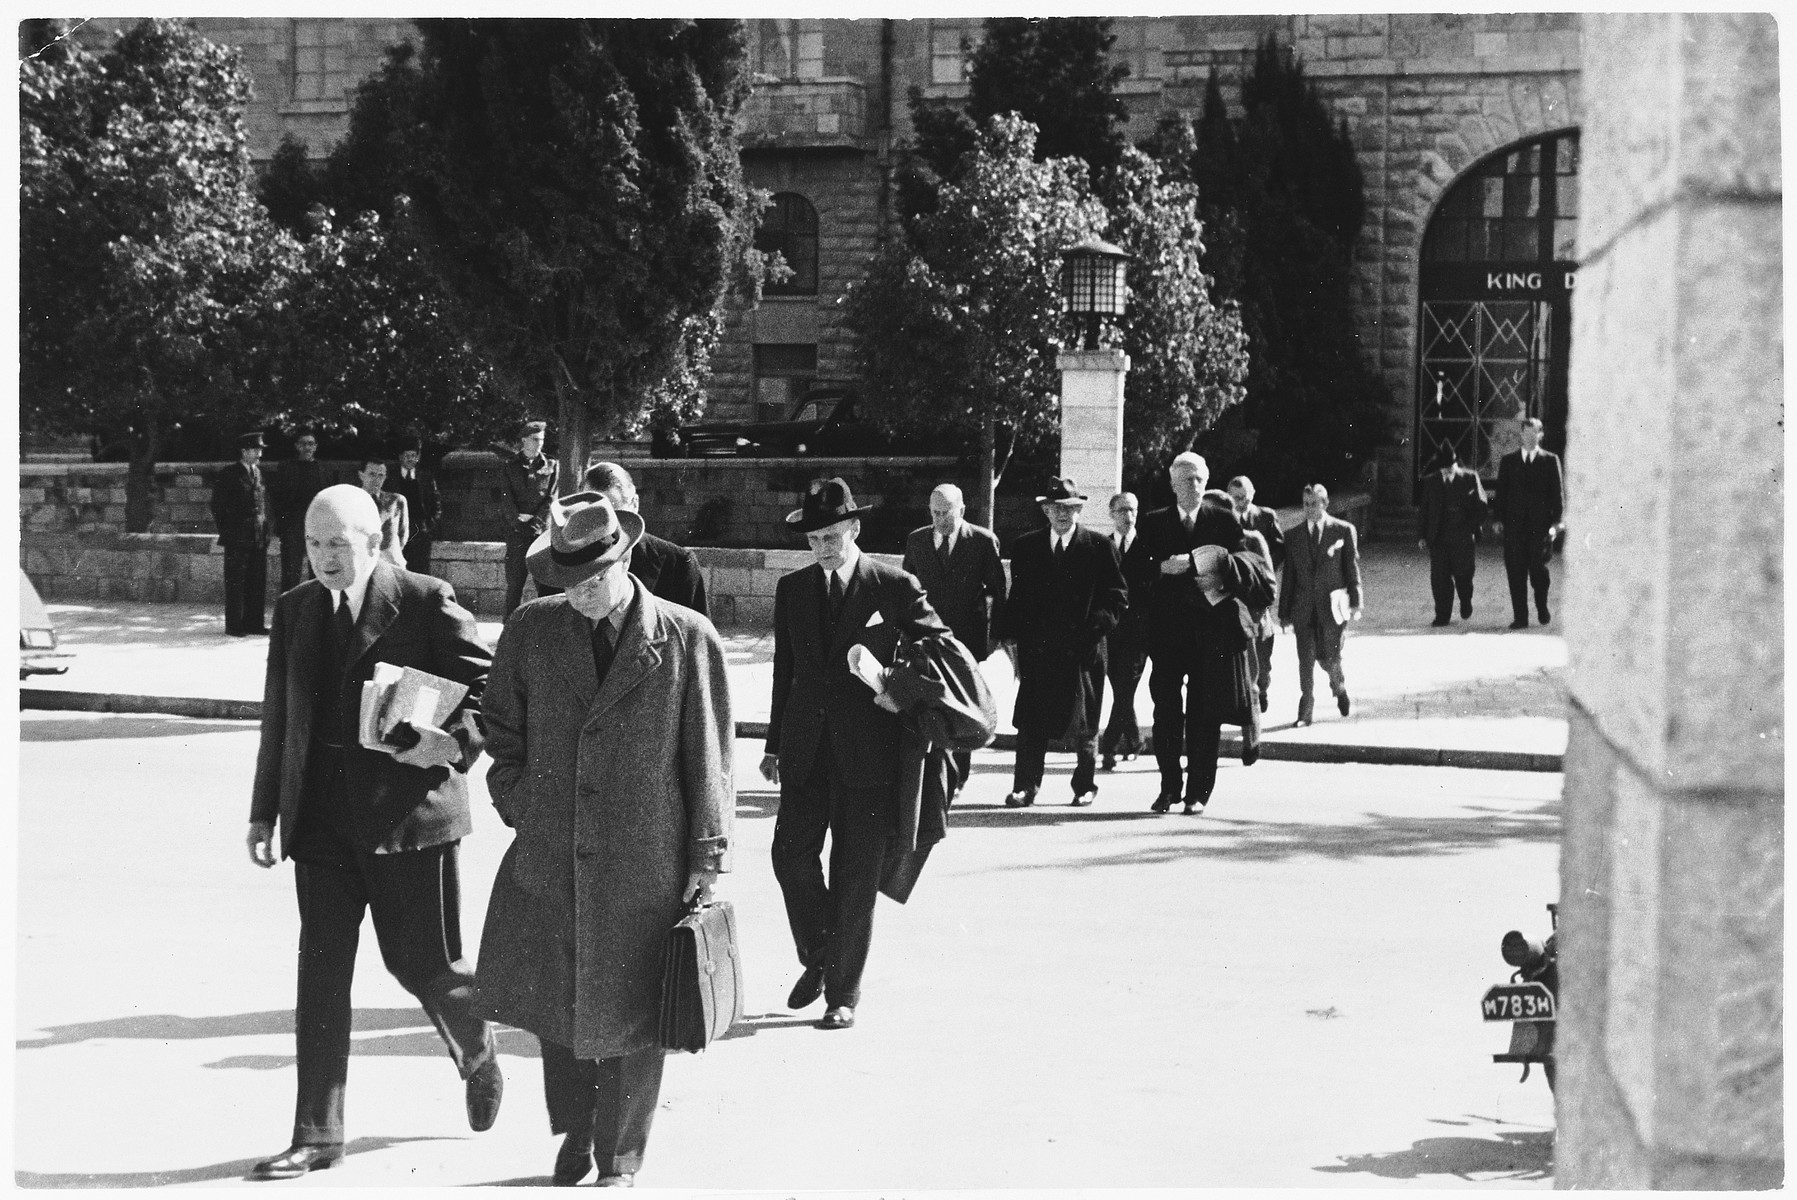 Members of the Anglo-American Committee of Inquiry on Palestine walk across the street from their lodgings at the King David Hotel to the YMCA building, where they are holding hearings about the situation in Palestine.  Among those pictured is James G. McDonald (the tall man near the lamp post).